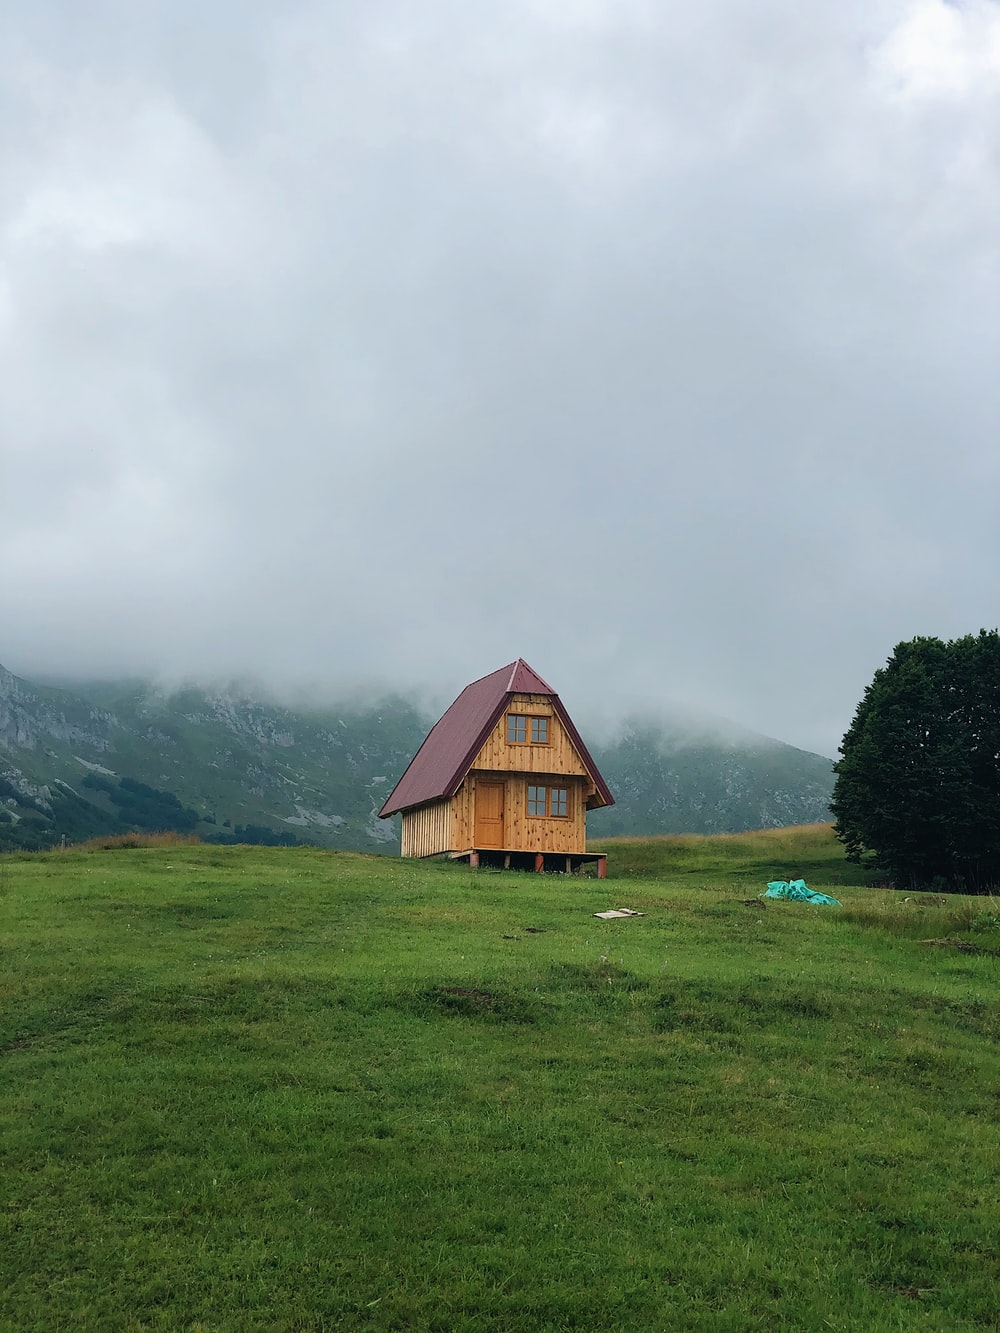 brown wooden house on green grass field near green mountains under white clouds during daytime